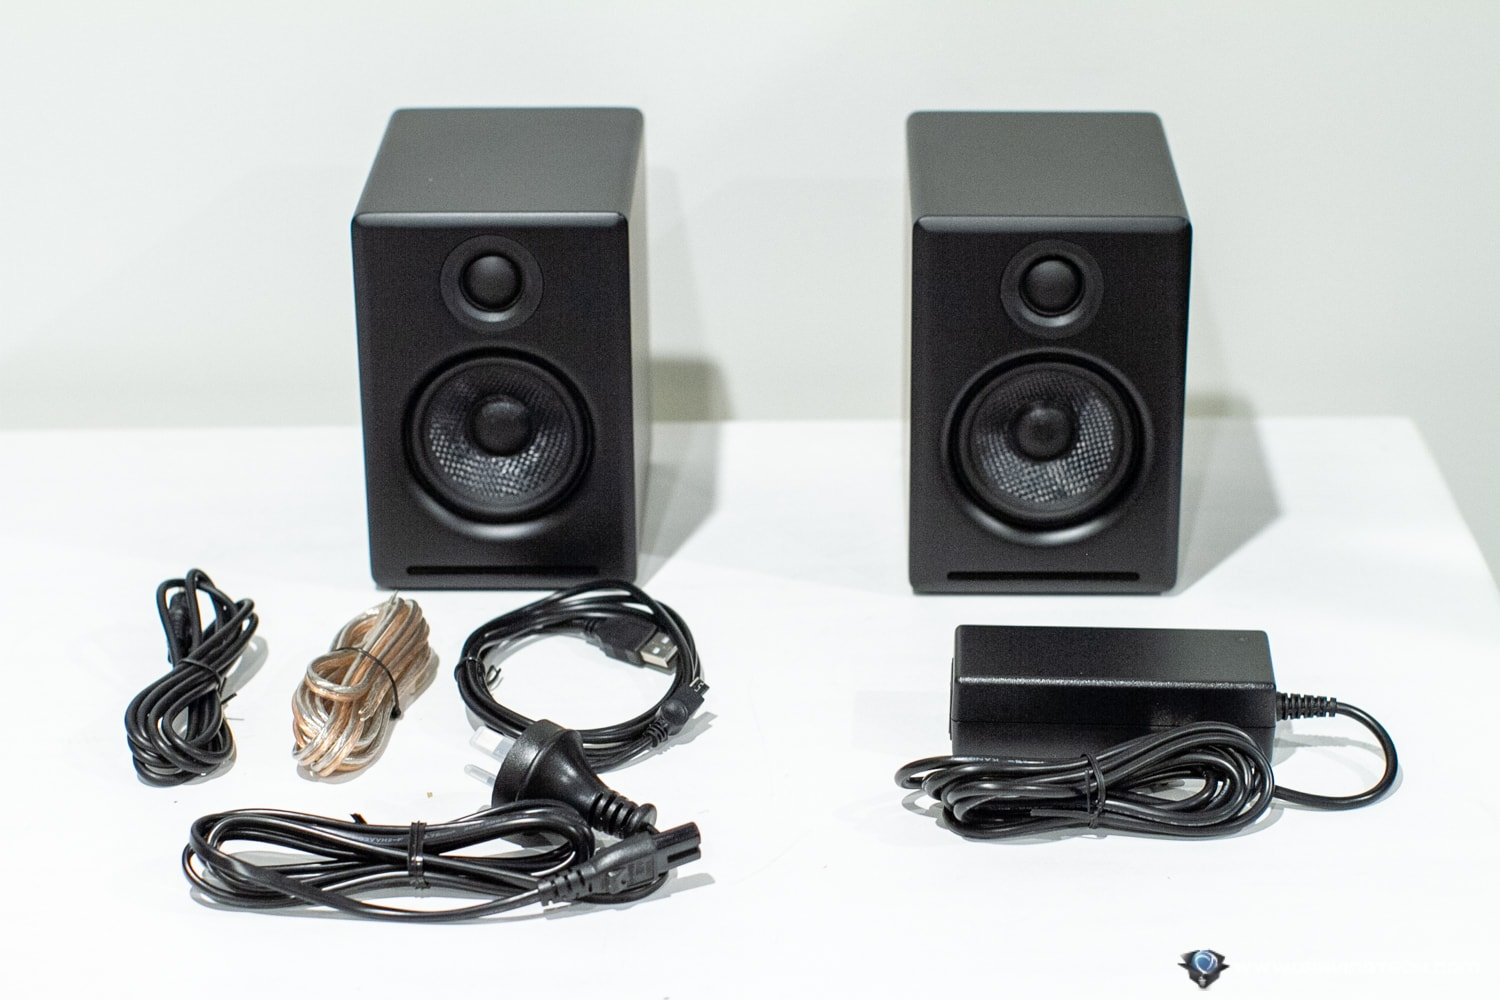 AudioEngine A2+ Wireless Speakers Packaging Contents